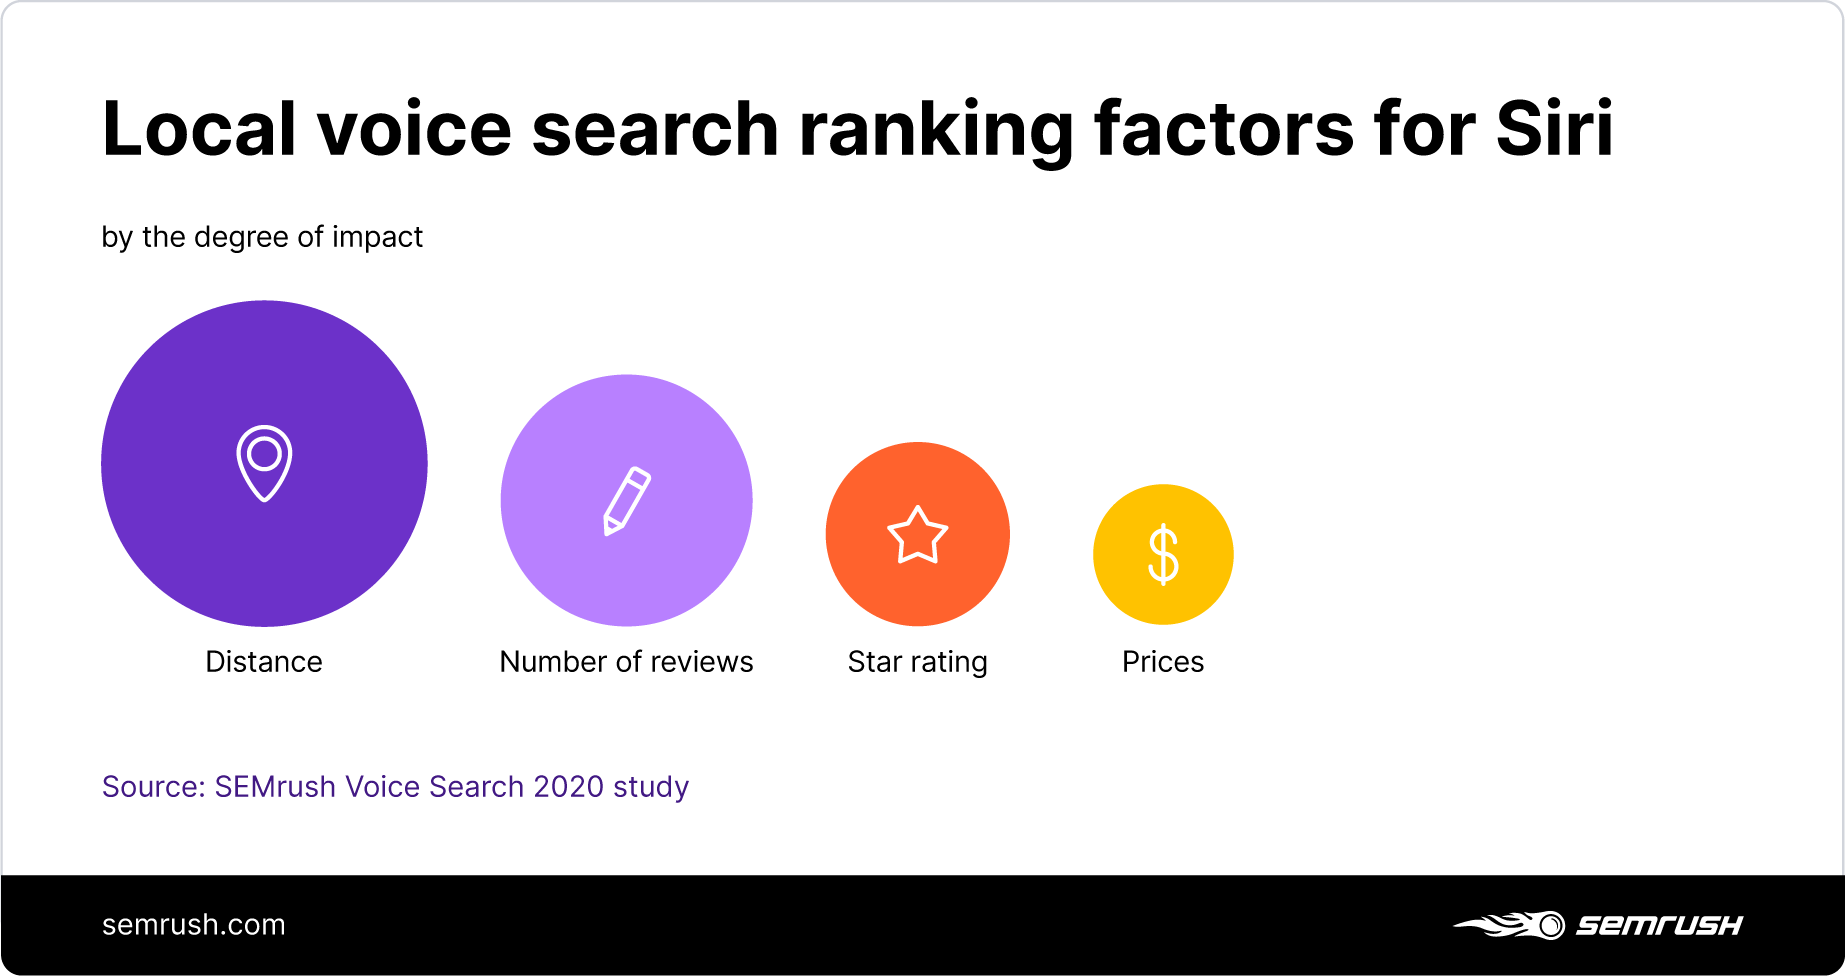 Local search ranking factors for Siri